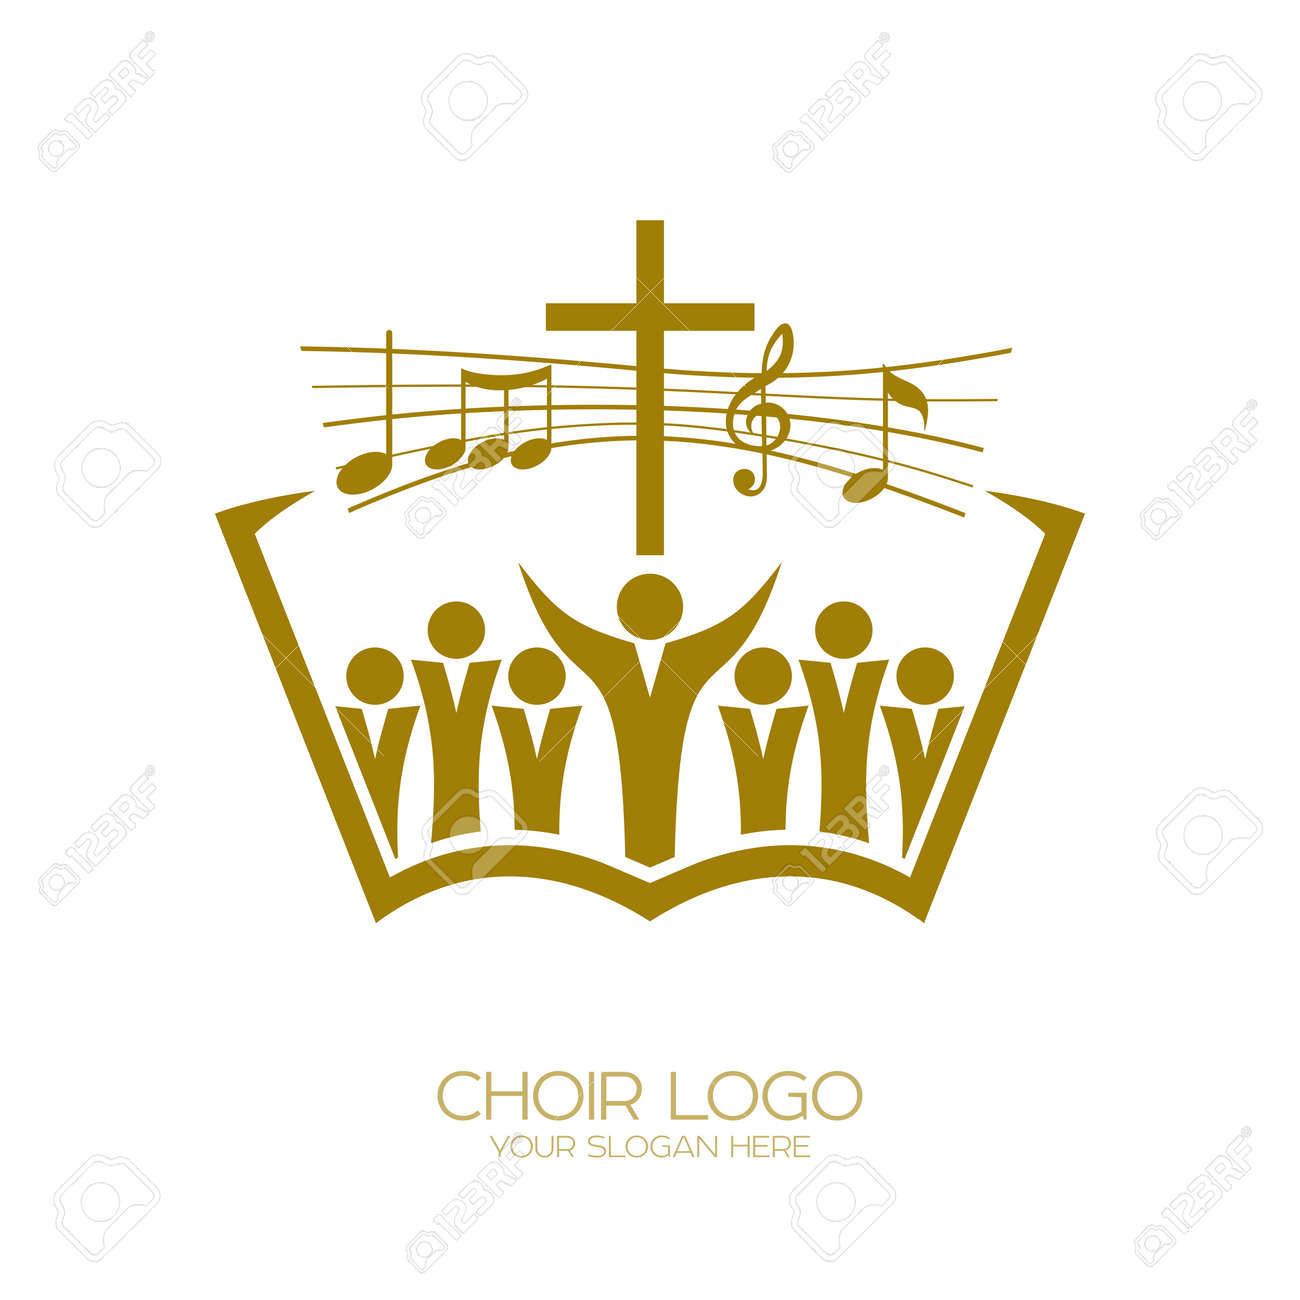 Music logo  Christian symbols  Believers in Jesus sing a song